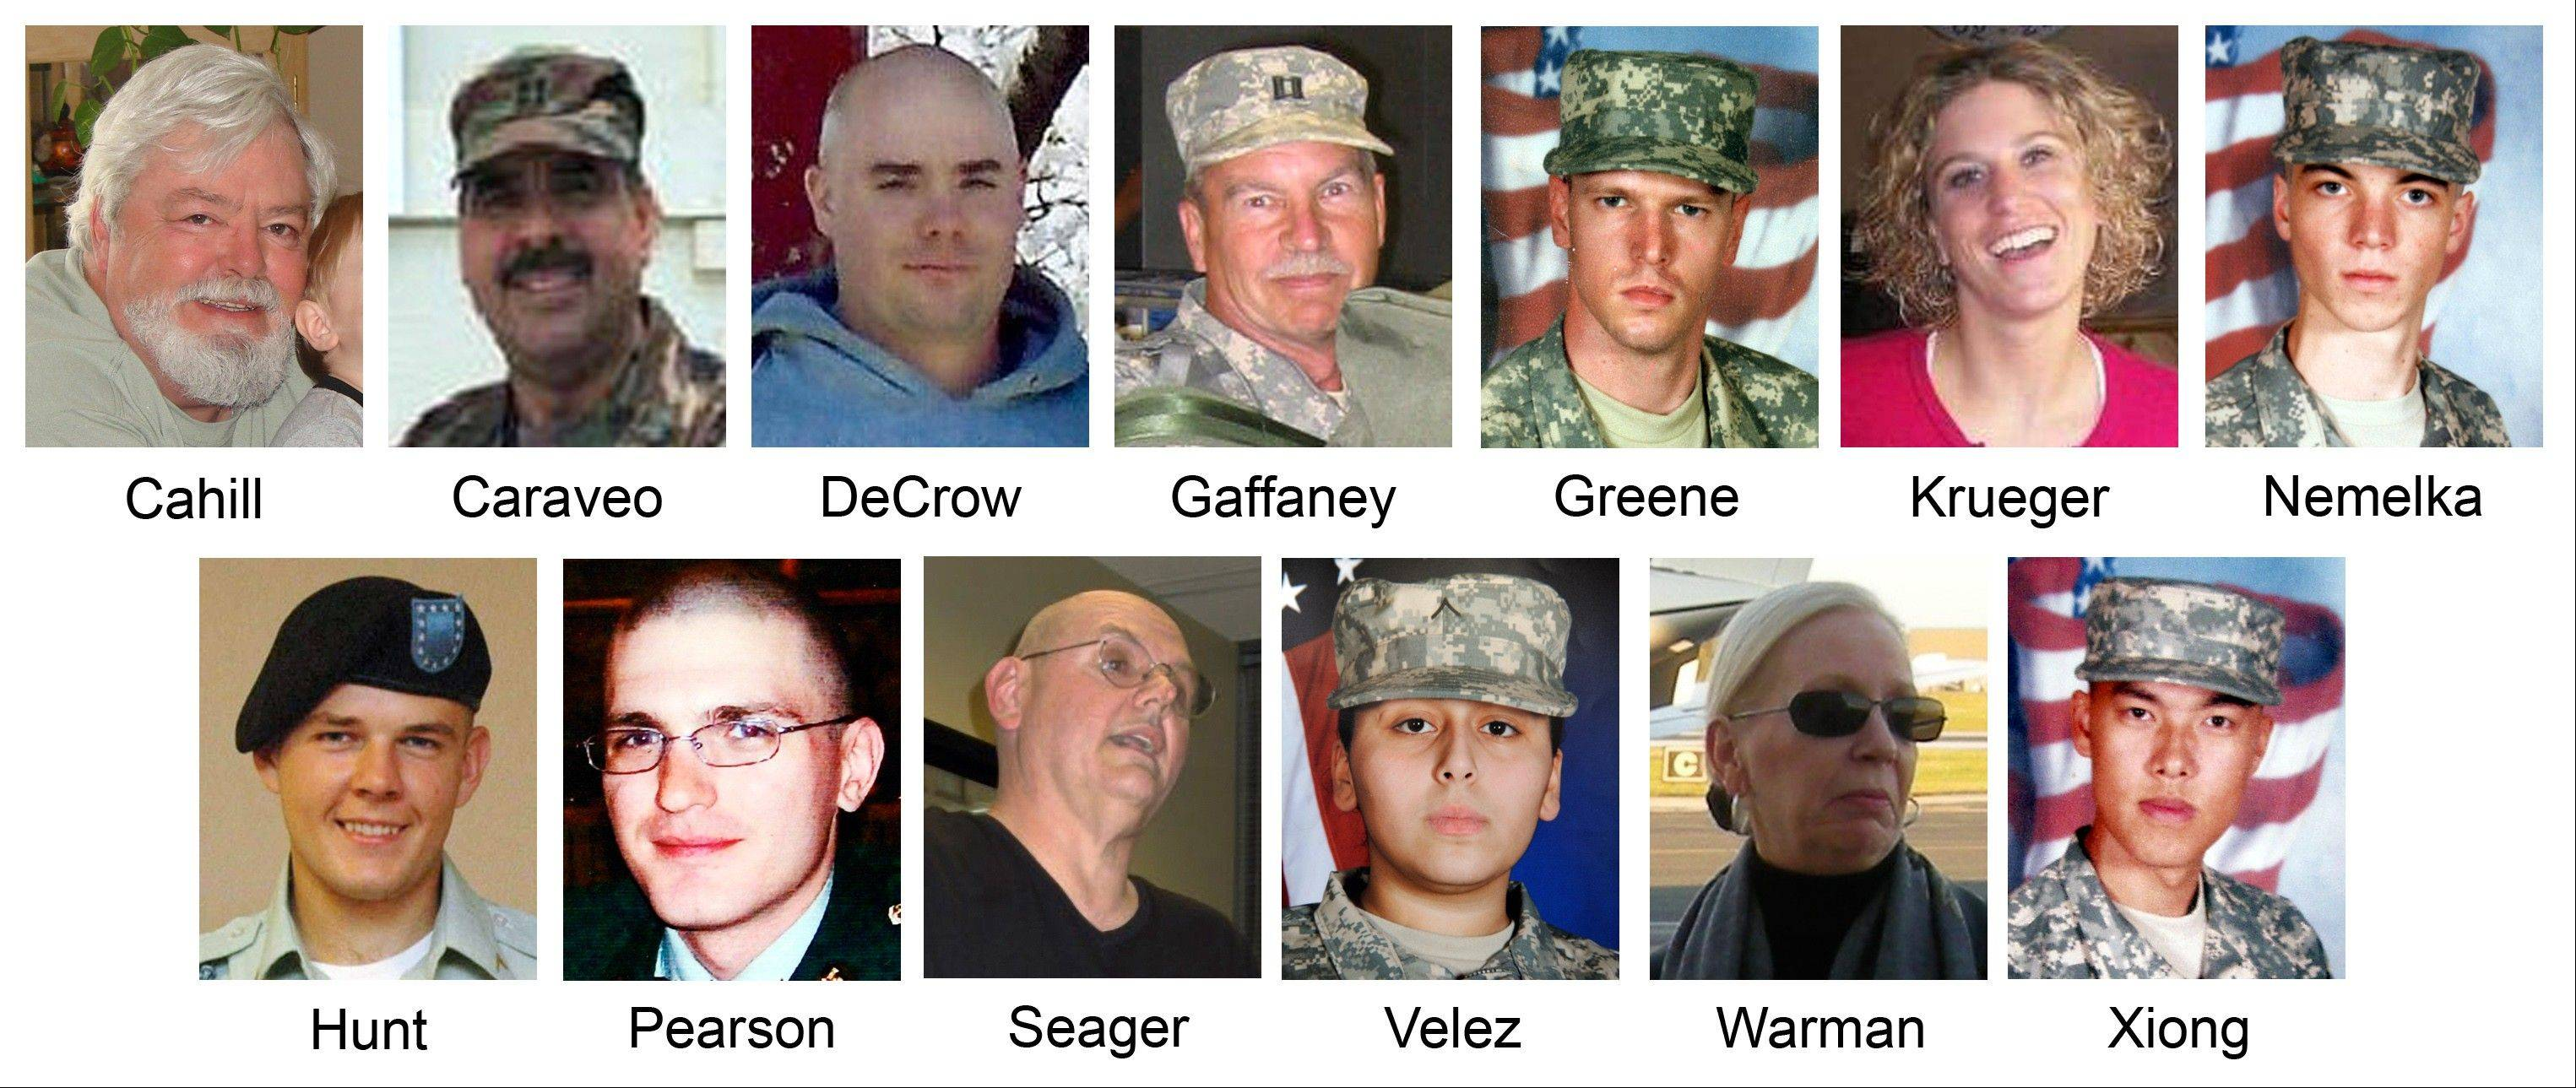 The victims killed during the 2009 shooting rampage at Fort Hood, Texas. From top left, Michael Grant Cahill, 62, of Cameron, Texas; Maj. Libardo Eduardo Caraveo, 52, of Woodbridge, Va.; Staff Sgt. Justin M. DeCrow, 32, of Evans, Ga.; Capt. John Gaffaney, 56, of San Diego, Calif.; Spc. Frederick Greene, 29, of Mountain City, Tenn.; Spc. Jason Dean Hunt, 22, of Frederick, Okla., Sgt. Amy Krueger, 29, of Kiel, Wis.; Pfc. Aaron Thomas Nemelka, 19, of West Jordan, Utah; Pfc. Michael Pearson, 22, of Bolingbrook, Ill.; Capt. Russell Seager, 51, of Racine, Wis.; Pvt. Francheska Velez, 21, of Chicago; Lt. Col. Juanita Warman, 55, of Havre de Grace, Md.; and Pfc. Kham Xiong, 23, of St. Paul, Minn. A trial for Nidal Hasan, who is charged in the shooting rampage that left 13 dead and more than 30 others wounded, starts Tuesday, Aug. 6, 2013.